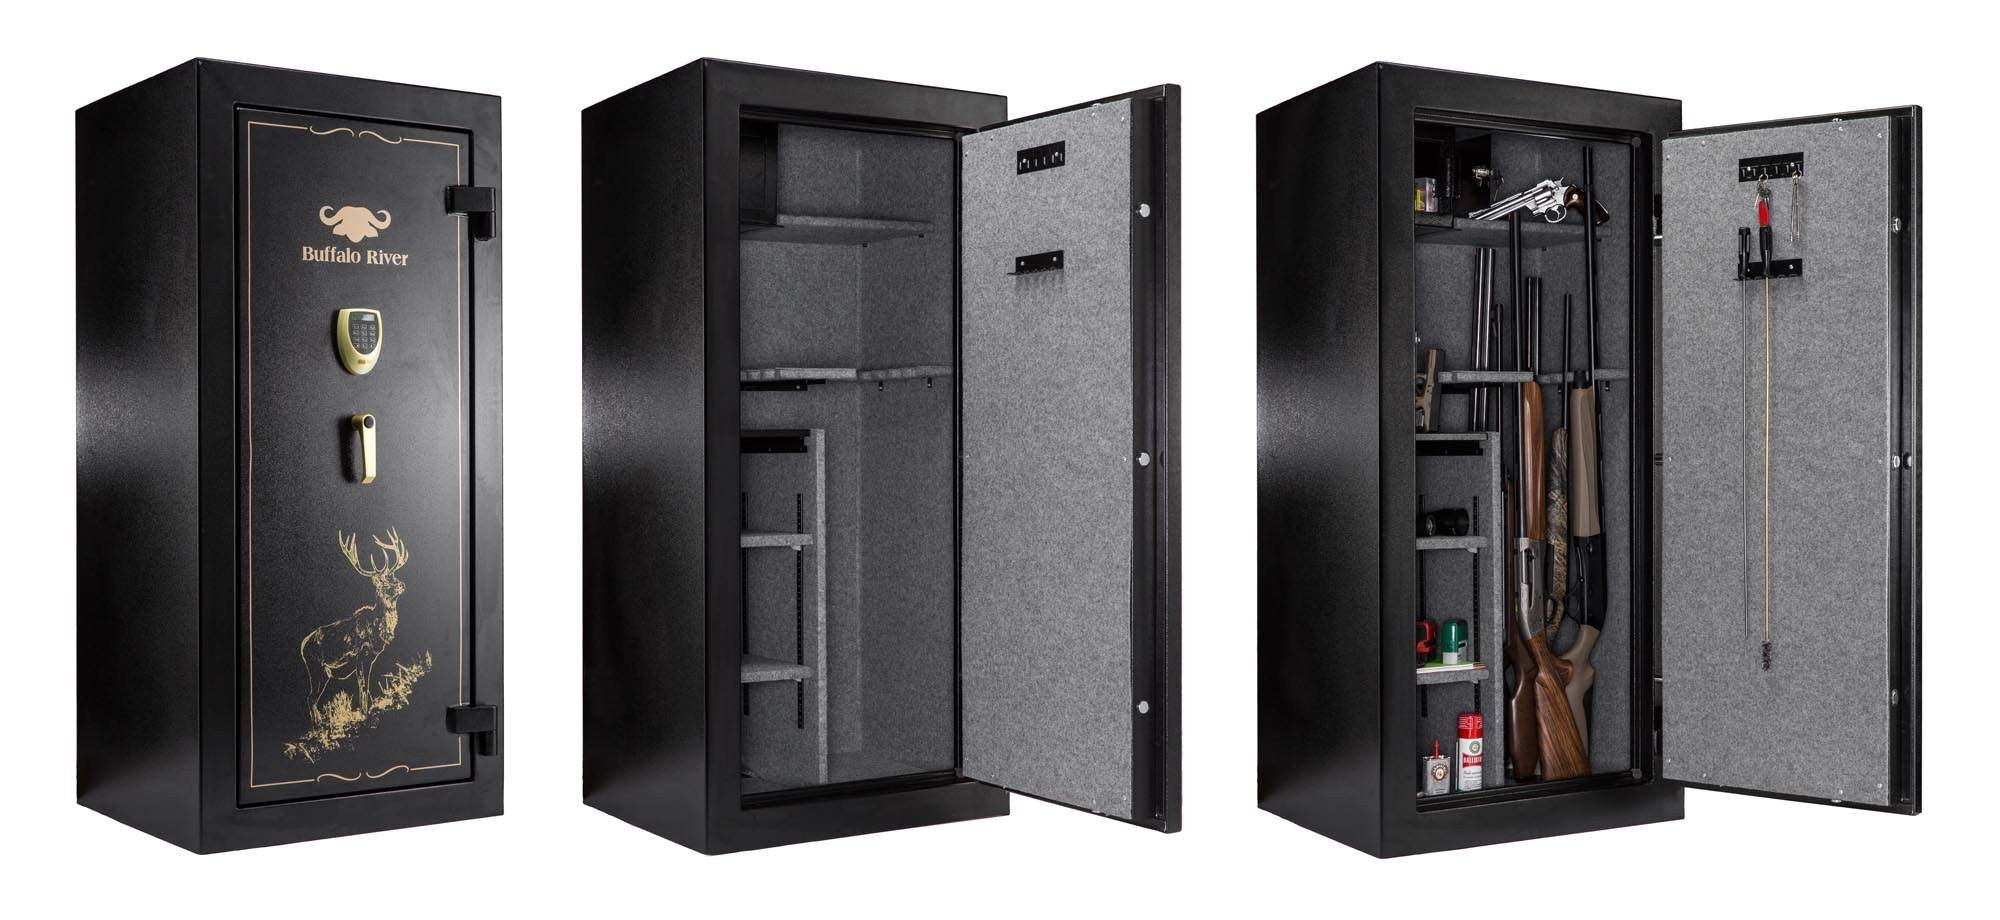 armoire forte buffalo river digital premium 22 armes armoires fortes pour armes longues. Black Bedroom Furniture Sets. Home Design Ideas